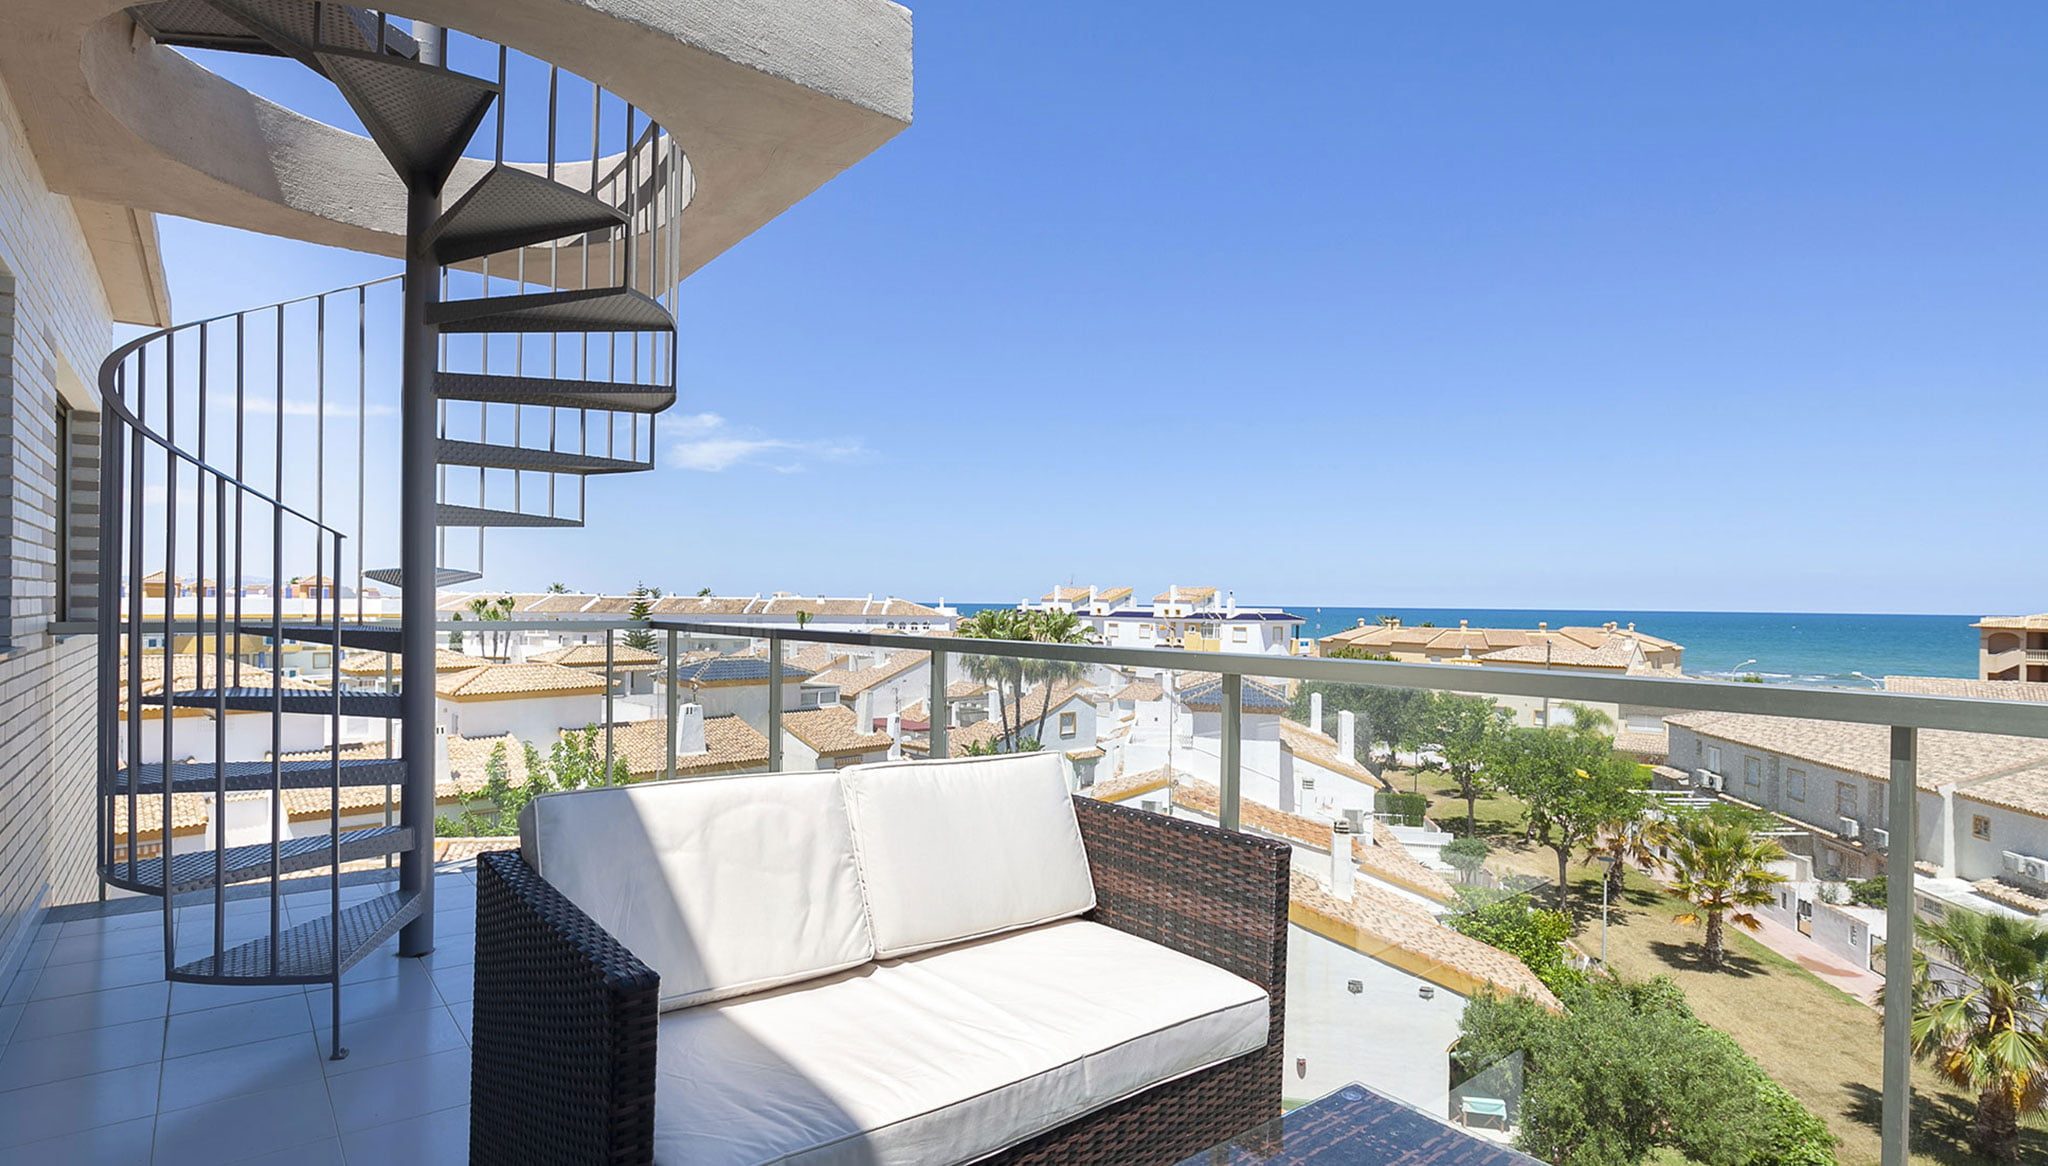 Terrace and apartment view - Quality Rent a Villa